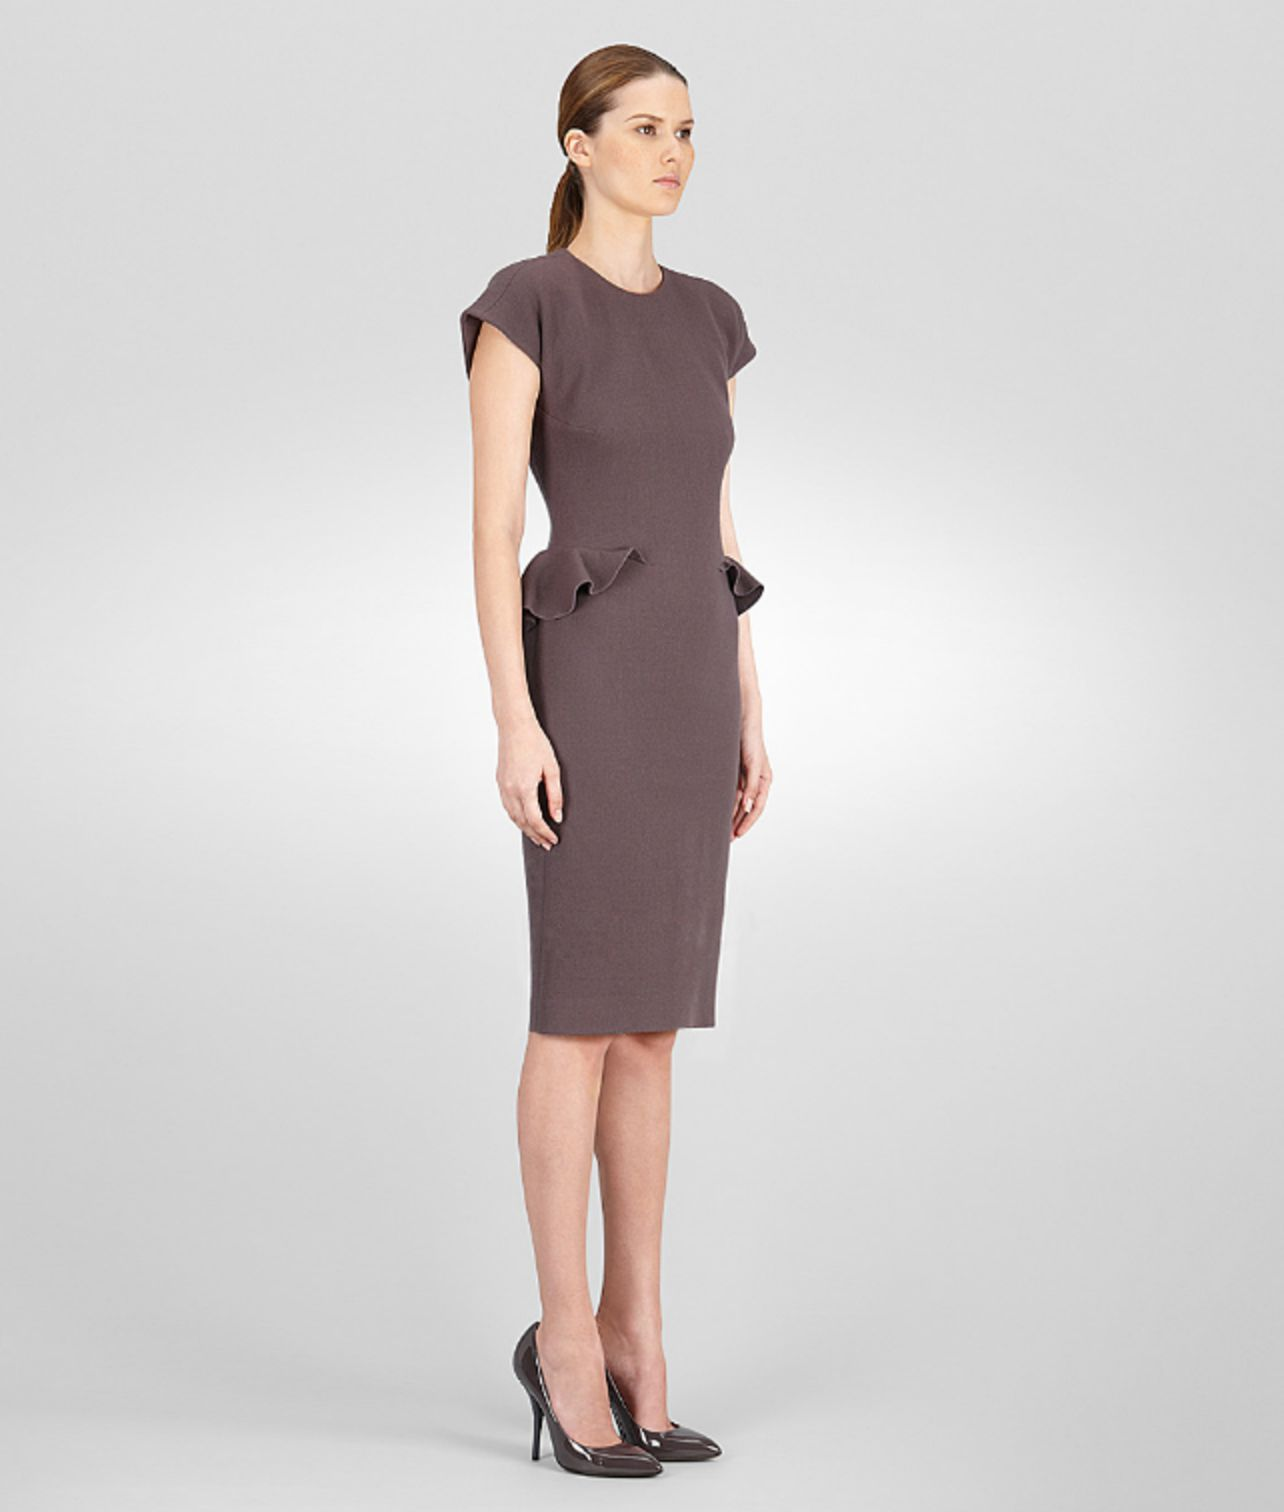 BOTTEGA VENETA - Crepe Italien Dress